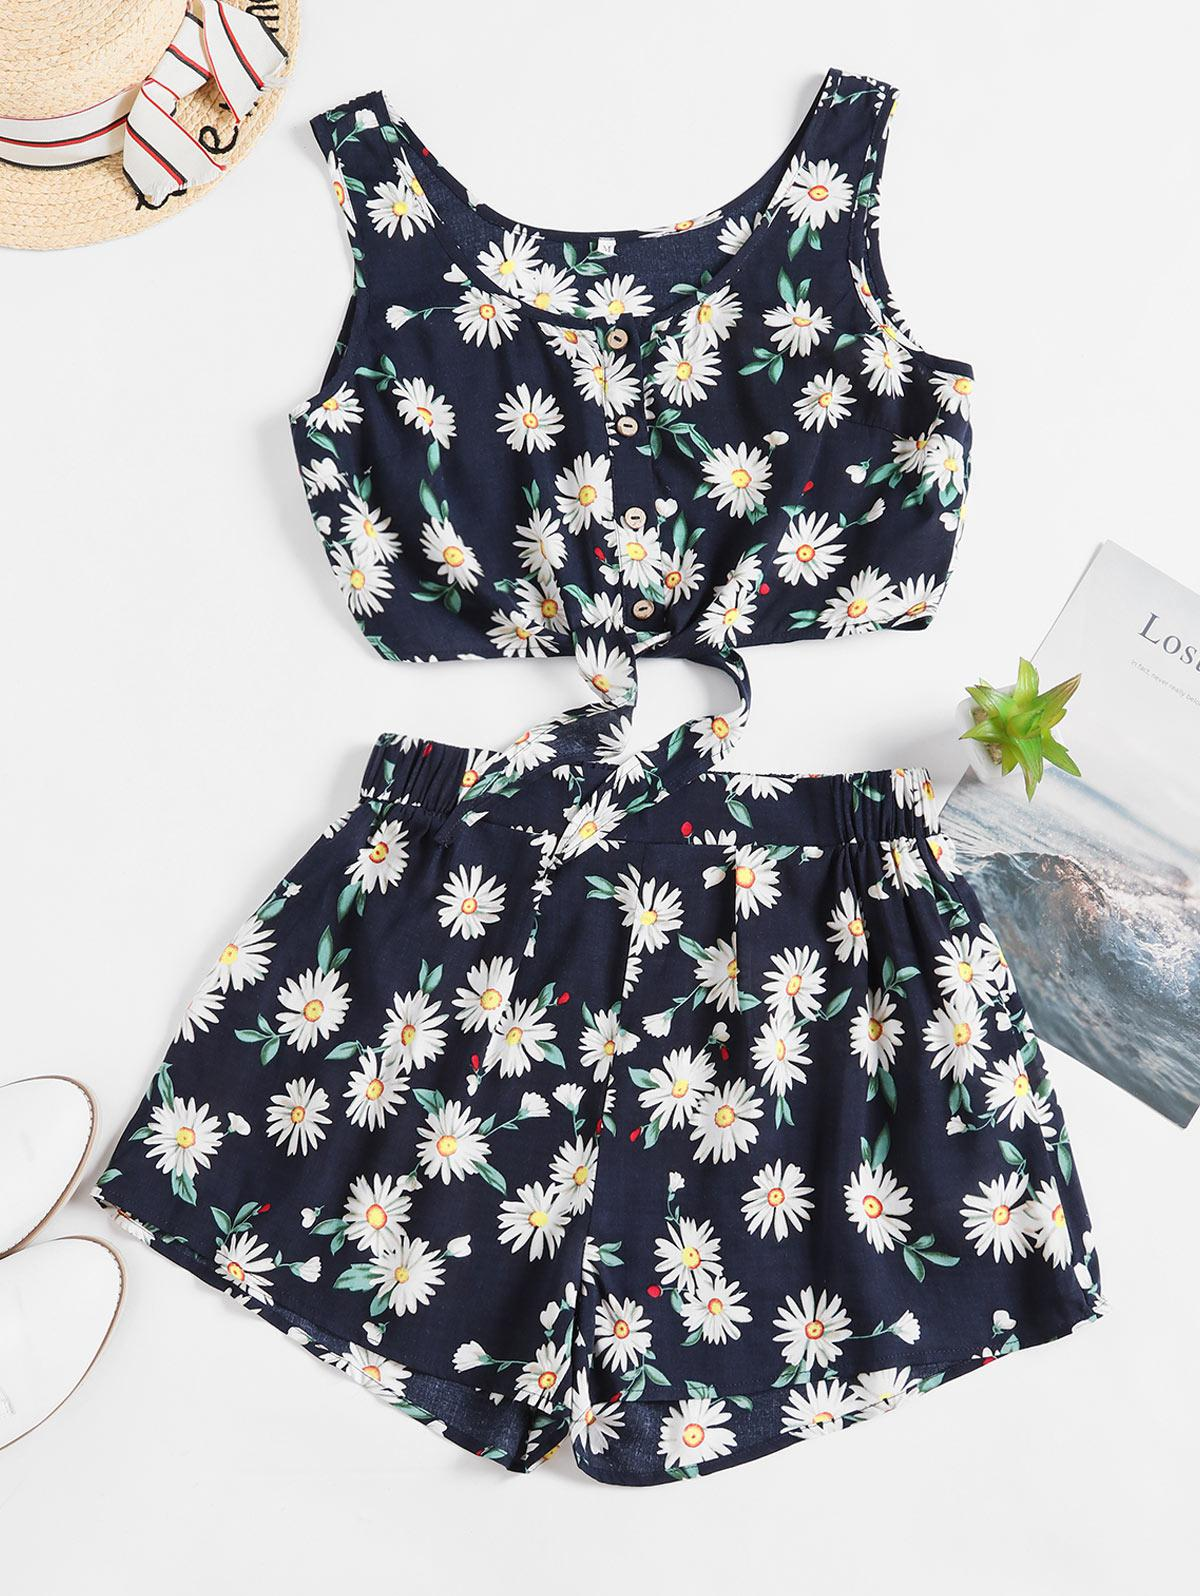 ZAFUL Floral Button Up Tie Hem Wide Leg Shorts Set